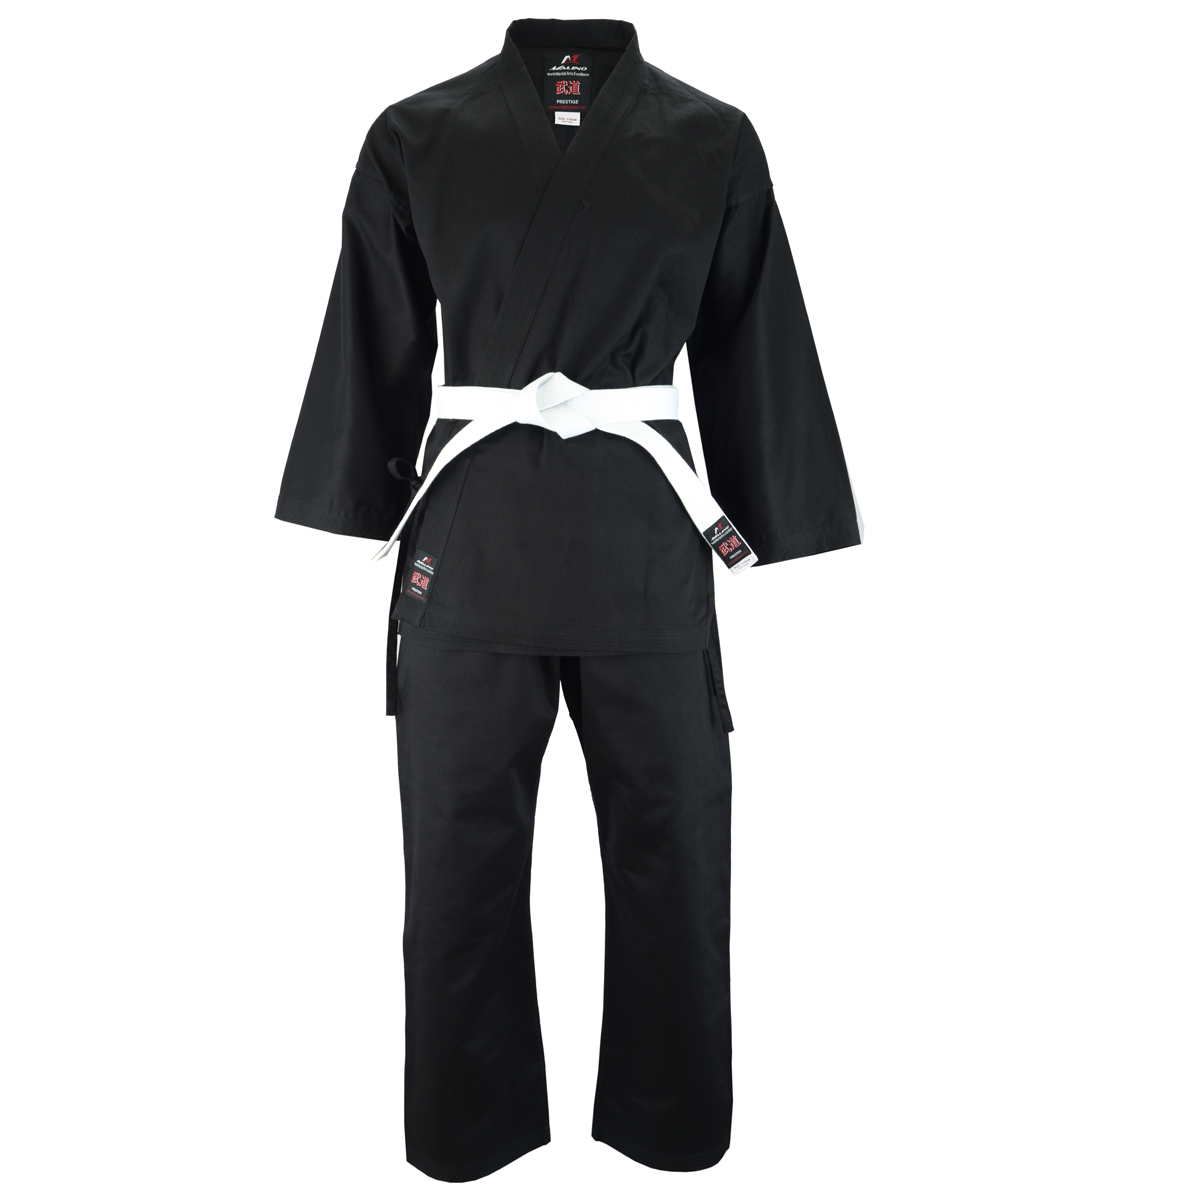 Malino 8oz Adult Black Karate Suit 100% Cotton